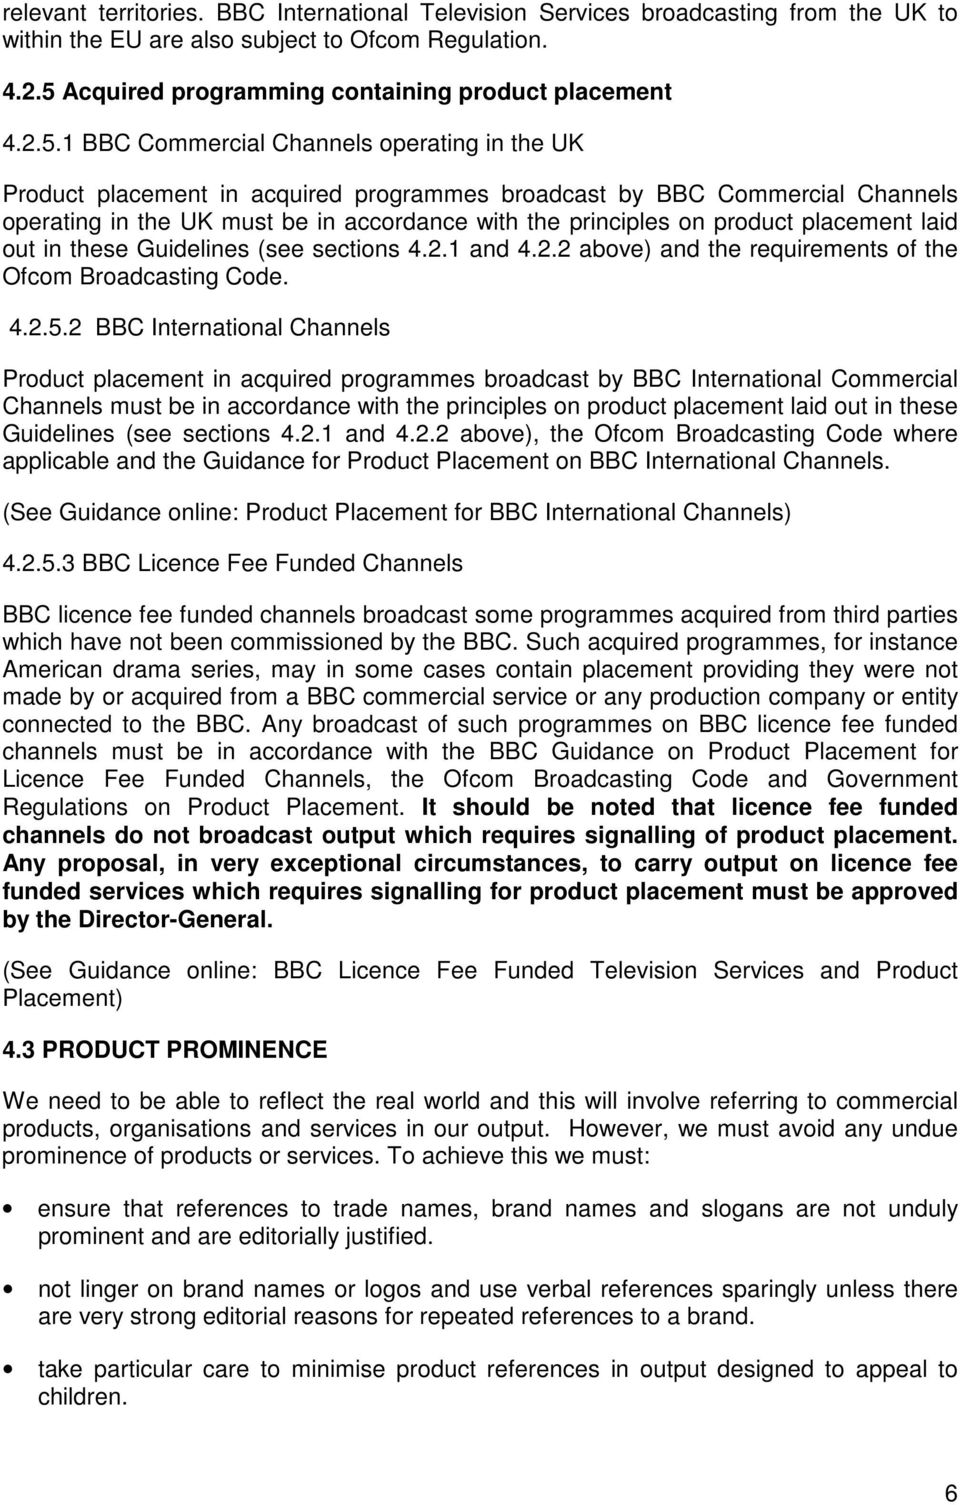 1 BBC Commercial Channels operating in the UK Product placement in acquired programmes broadcast by BBC Commercial Channels operating in the UK must be in accordance with the principles on product